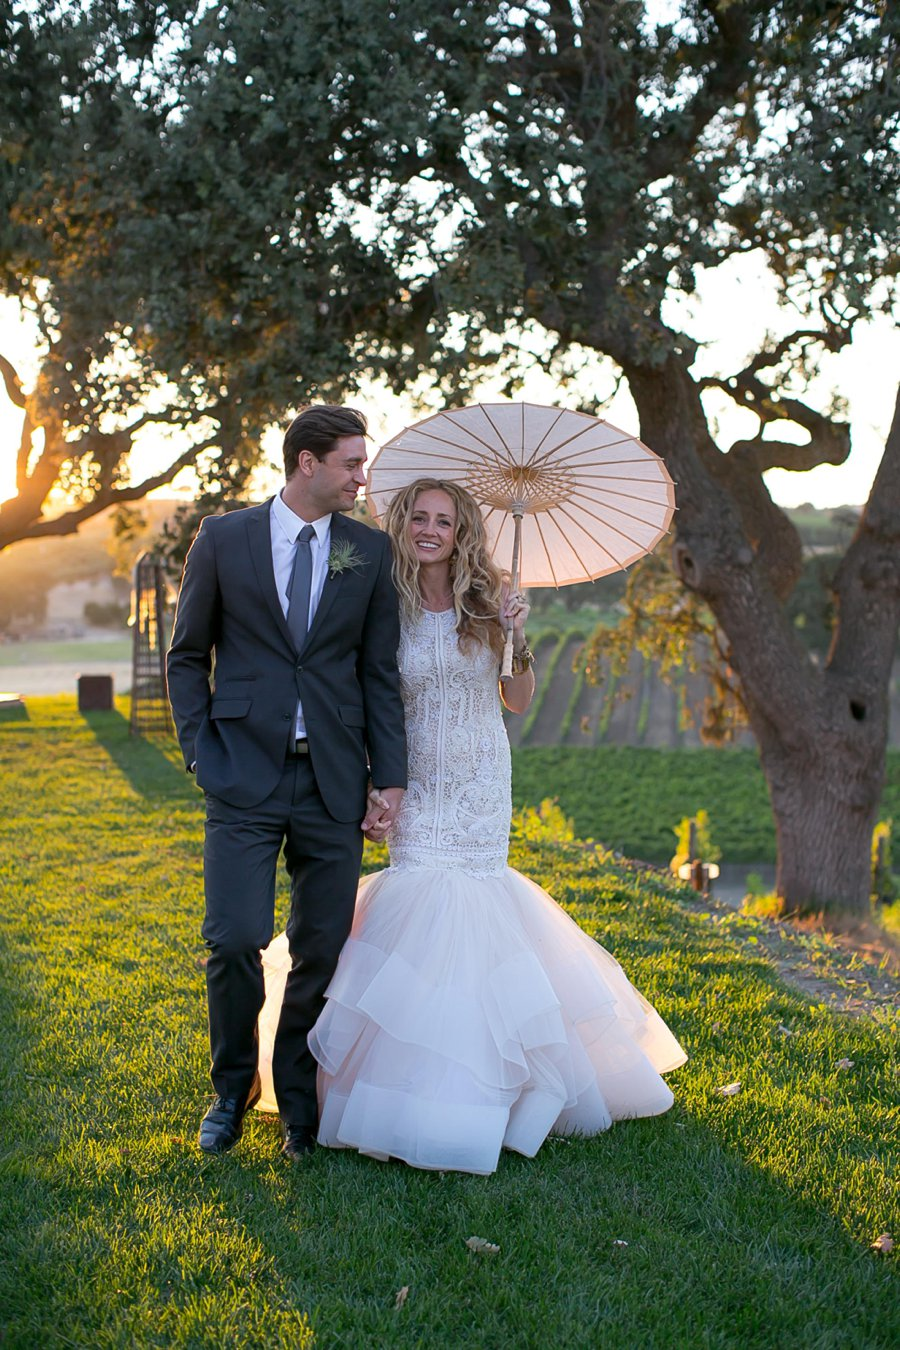 STOLPMANN VILLA AND VINEYARDS | LOS OLIVOS WEDDING PHOTOGRAPHER CHRIS HOLT PHOTOGRAPHY_063.jpg